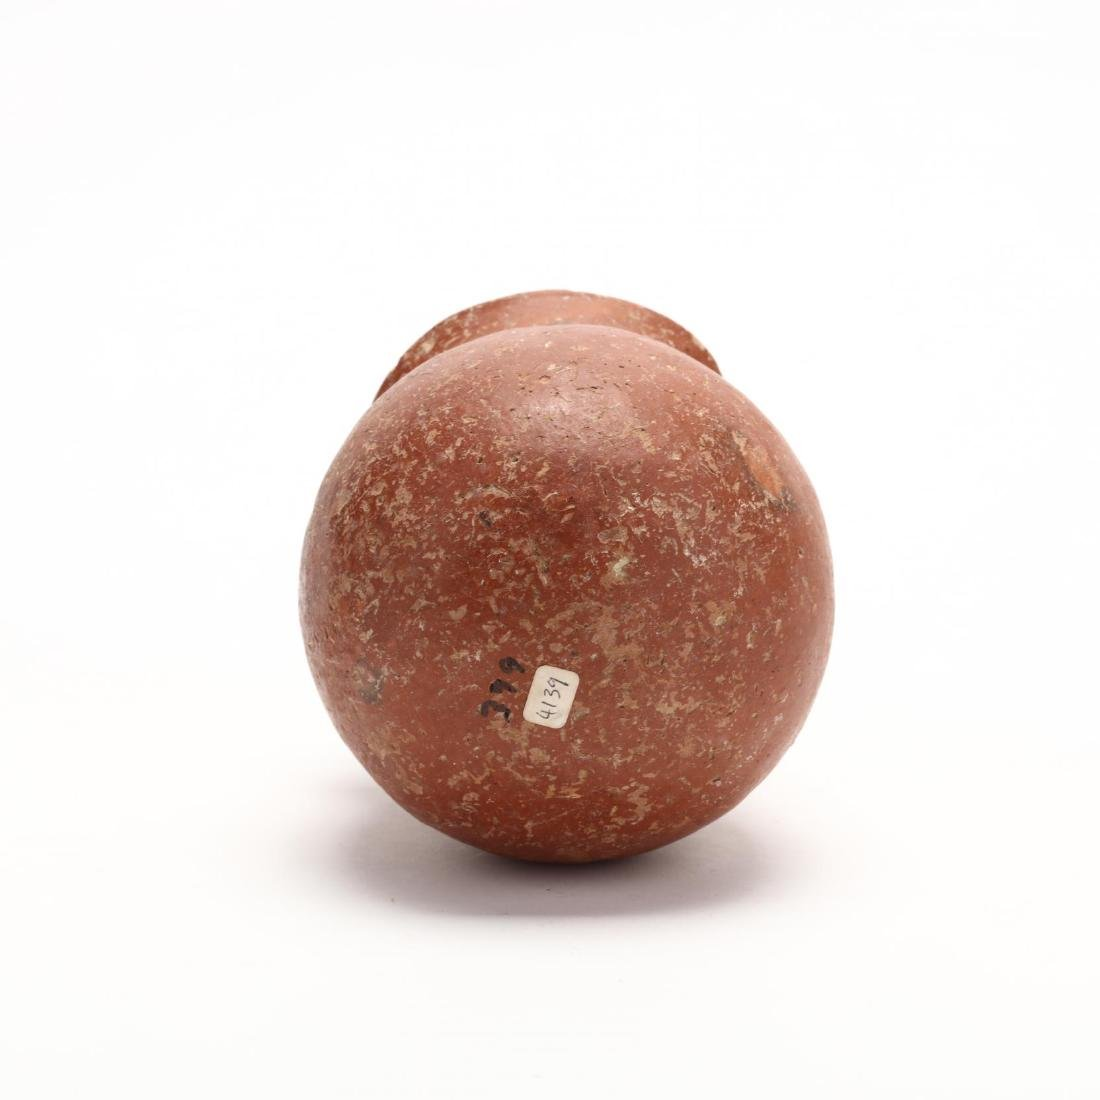 Cypriot Middle Bronze Age Polished Red Ware Jar - 5